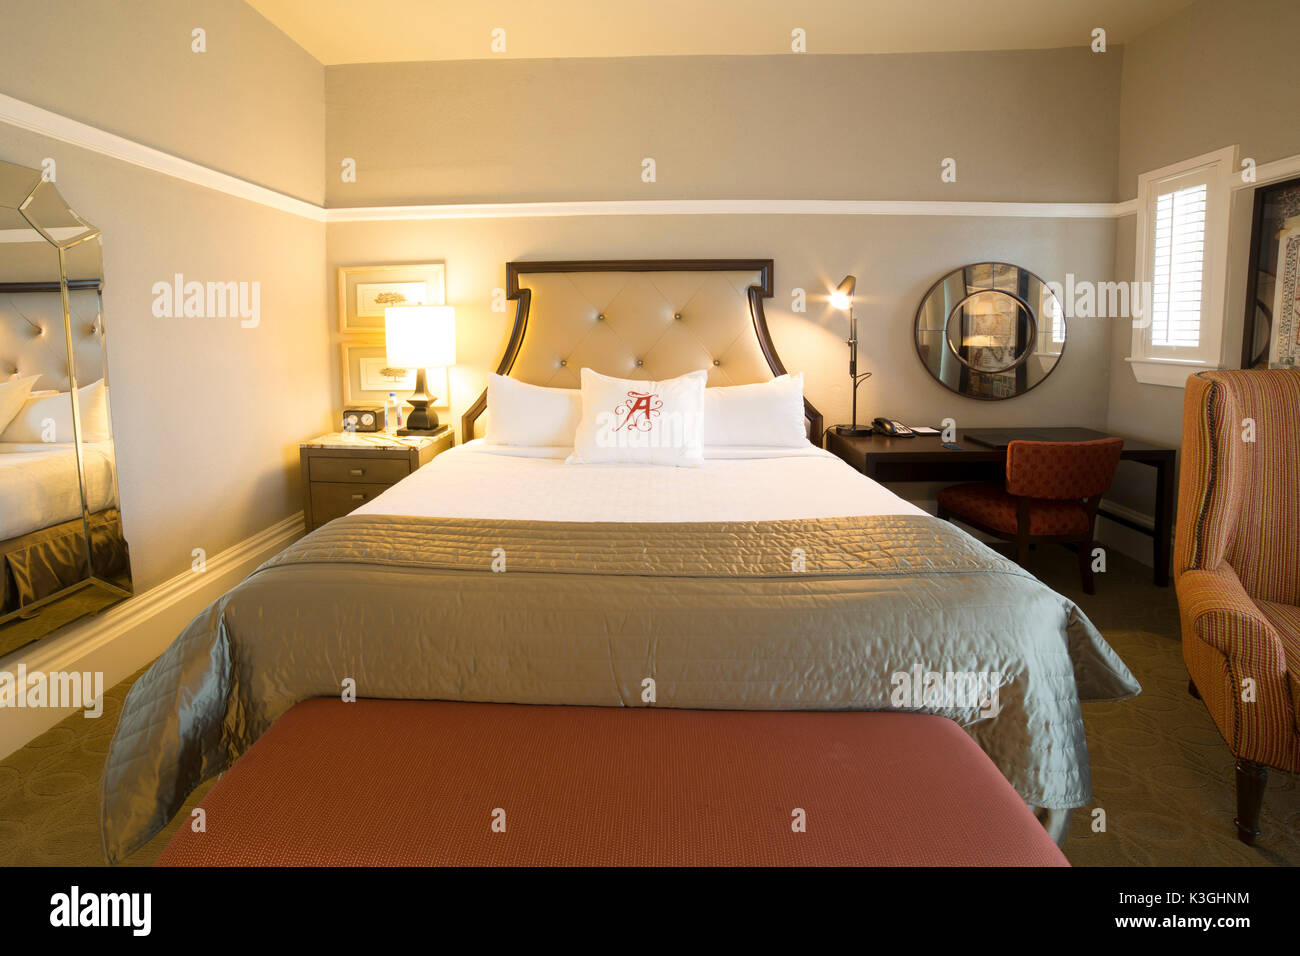 Guestroom at the Algonquin Resort in St Andrews, New Brunswick, Canada. - Stock Image